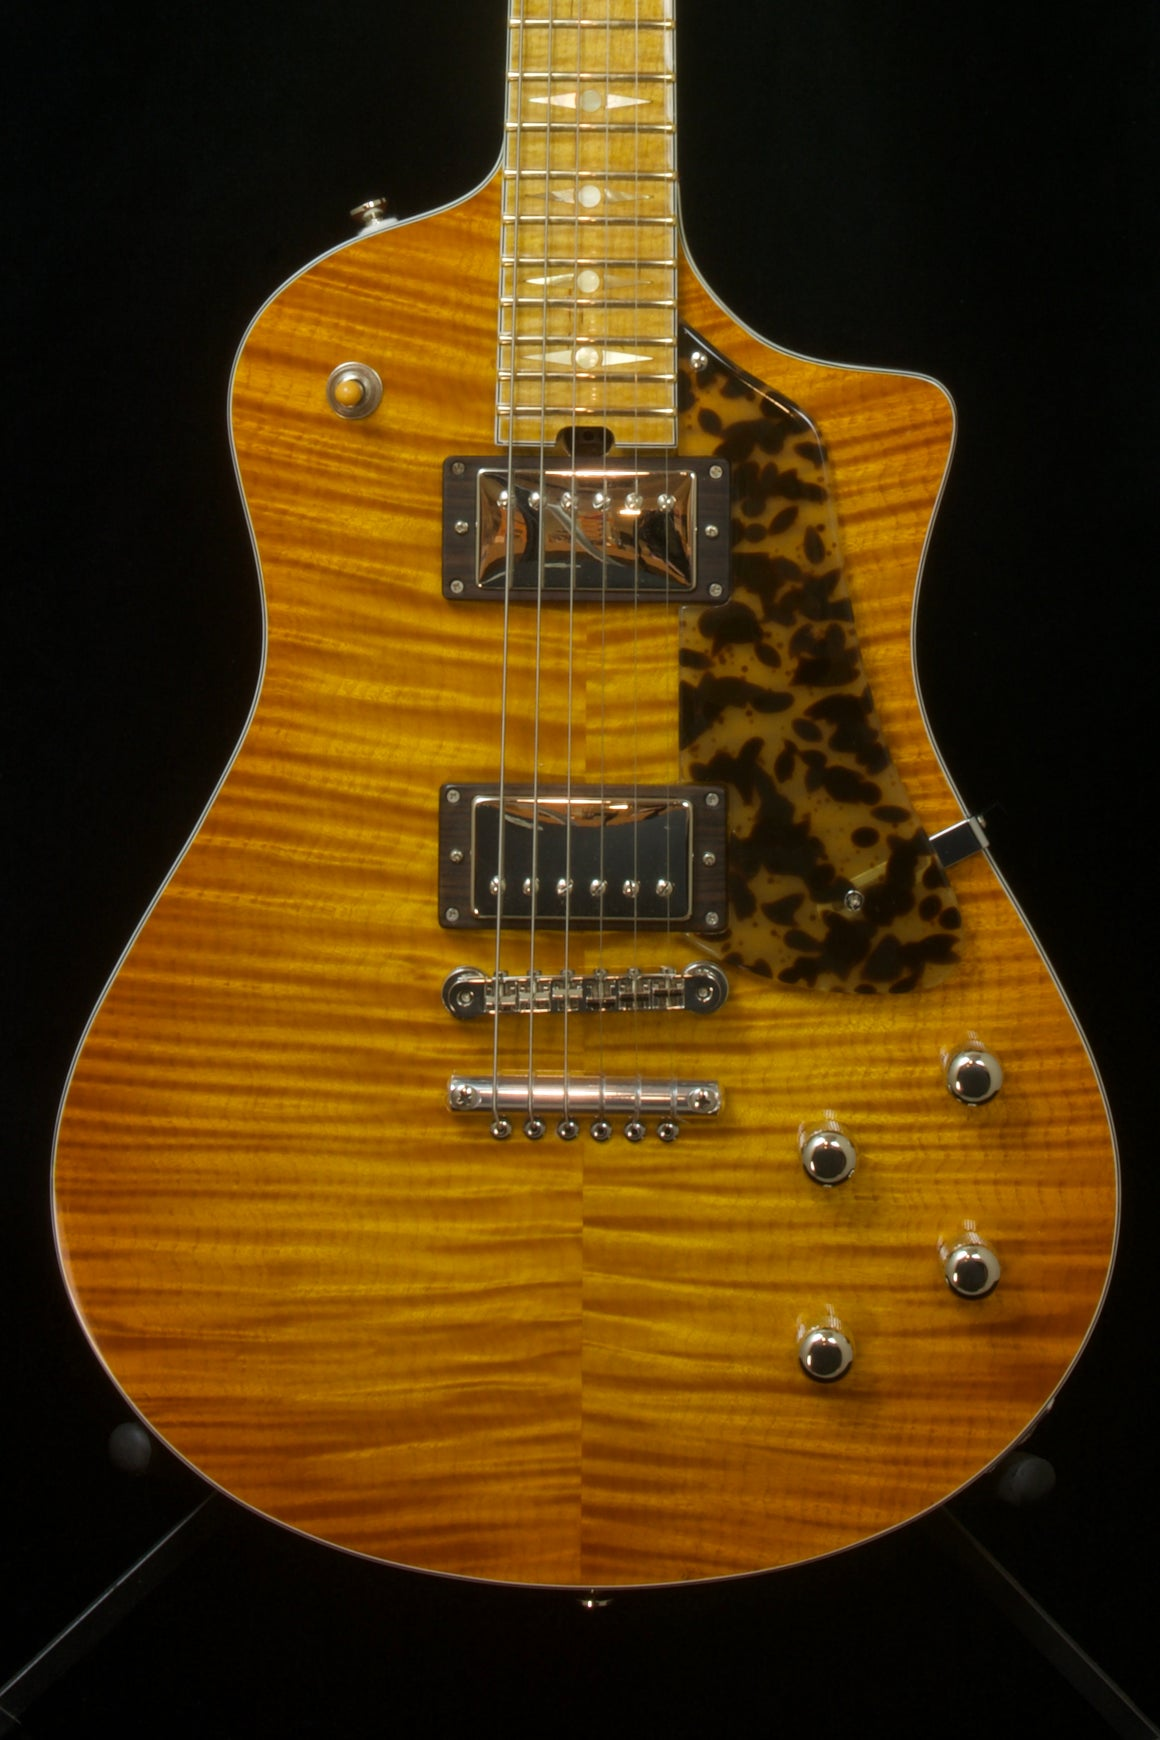 SOLD 2020 Asher Electro Sonic I Flame Maple Top 35th Anniversary Model #12 /35 Limited Edition $6200.00